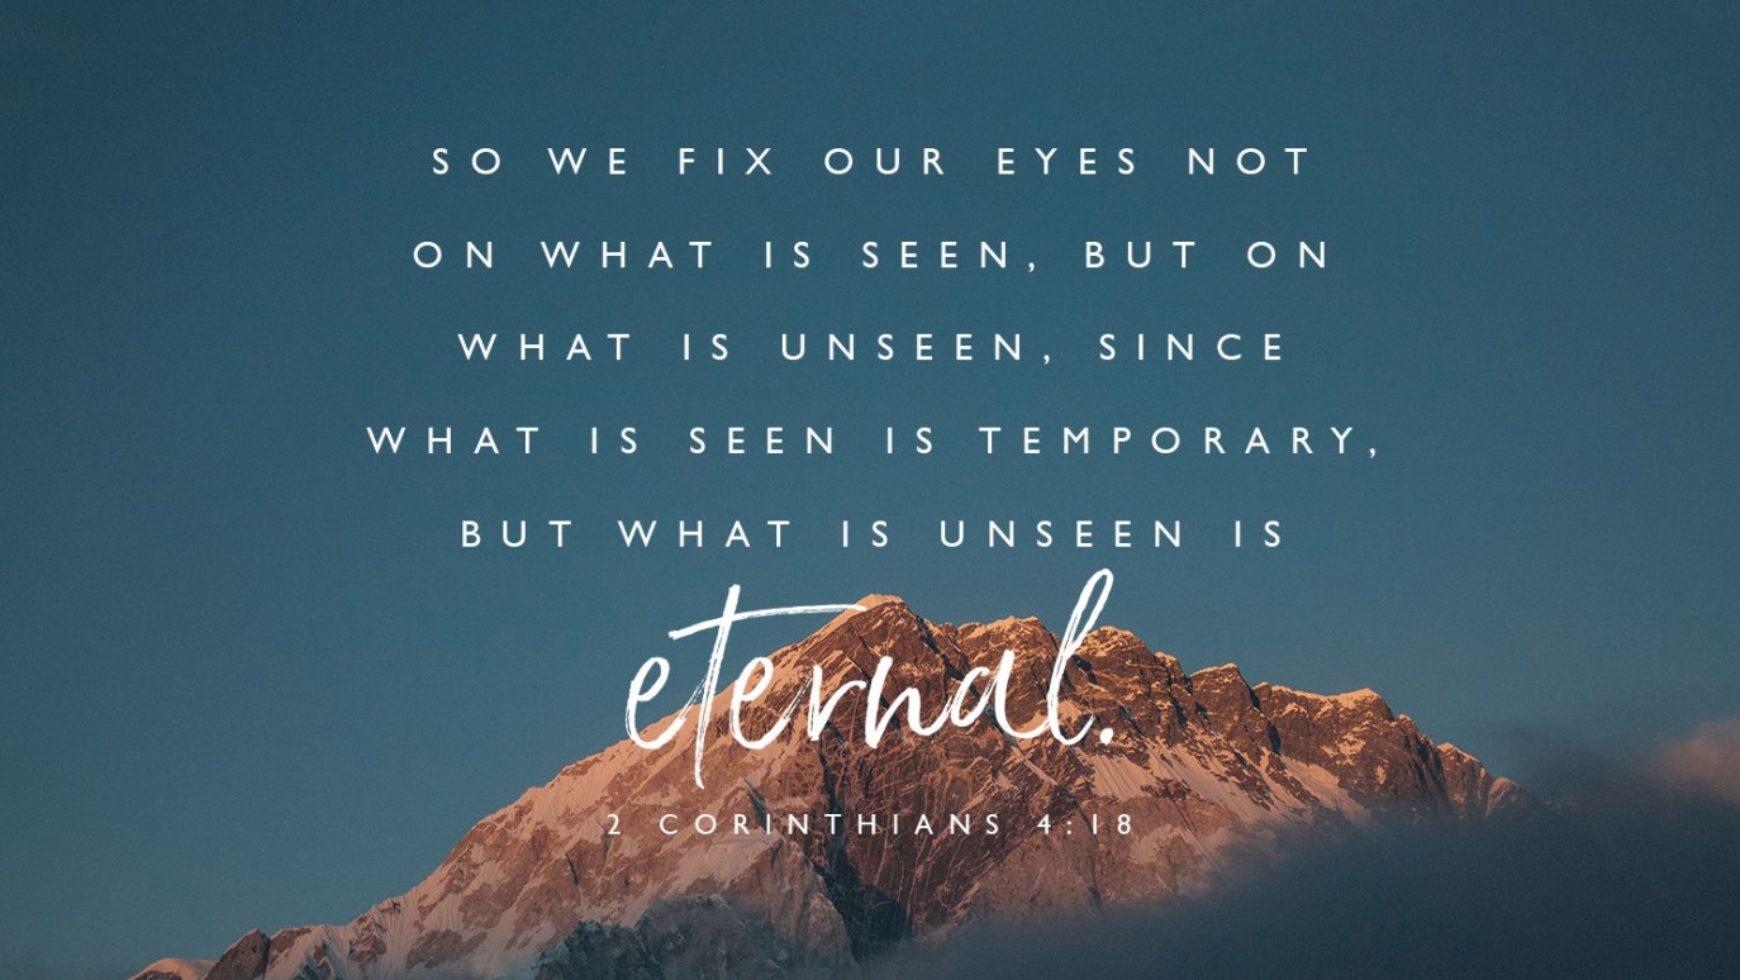 Focus on the Eternal